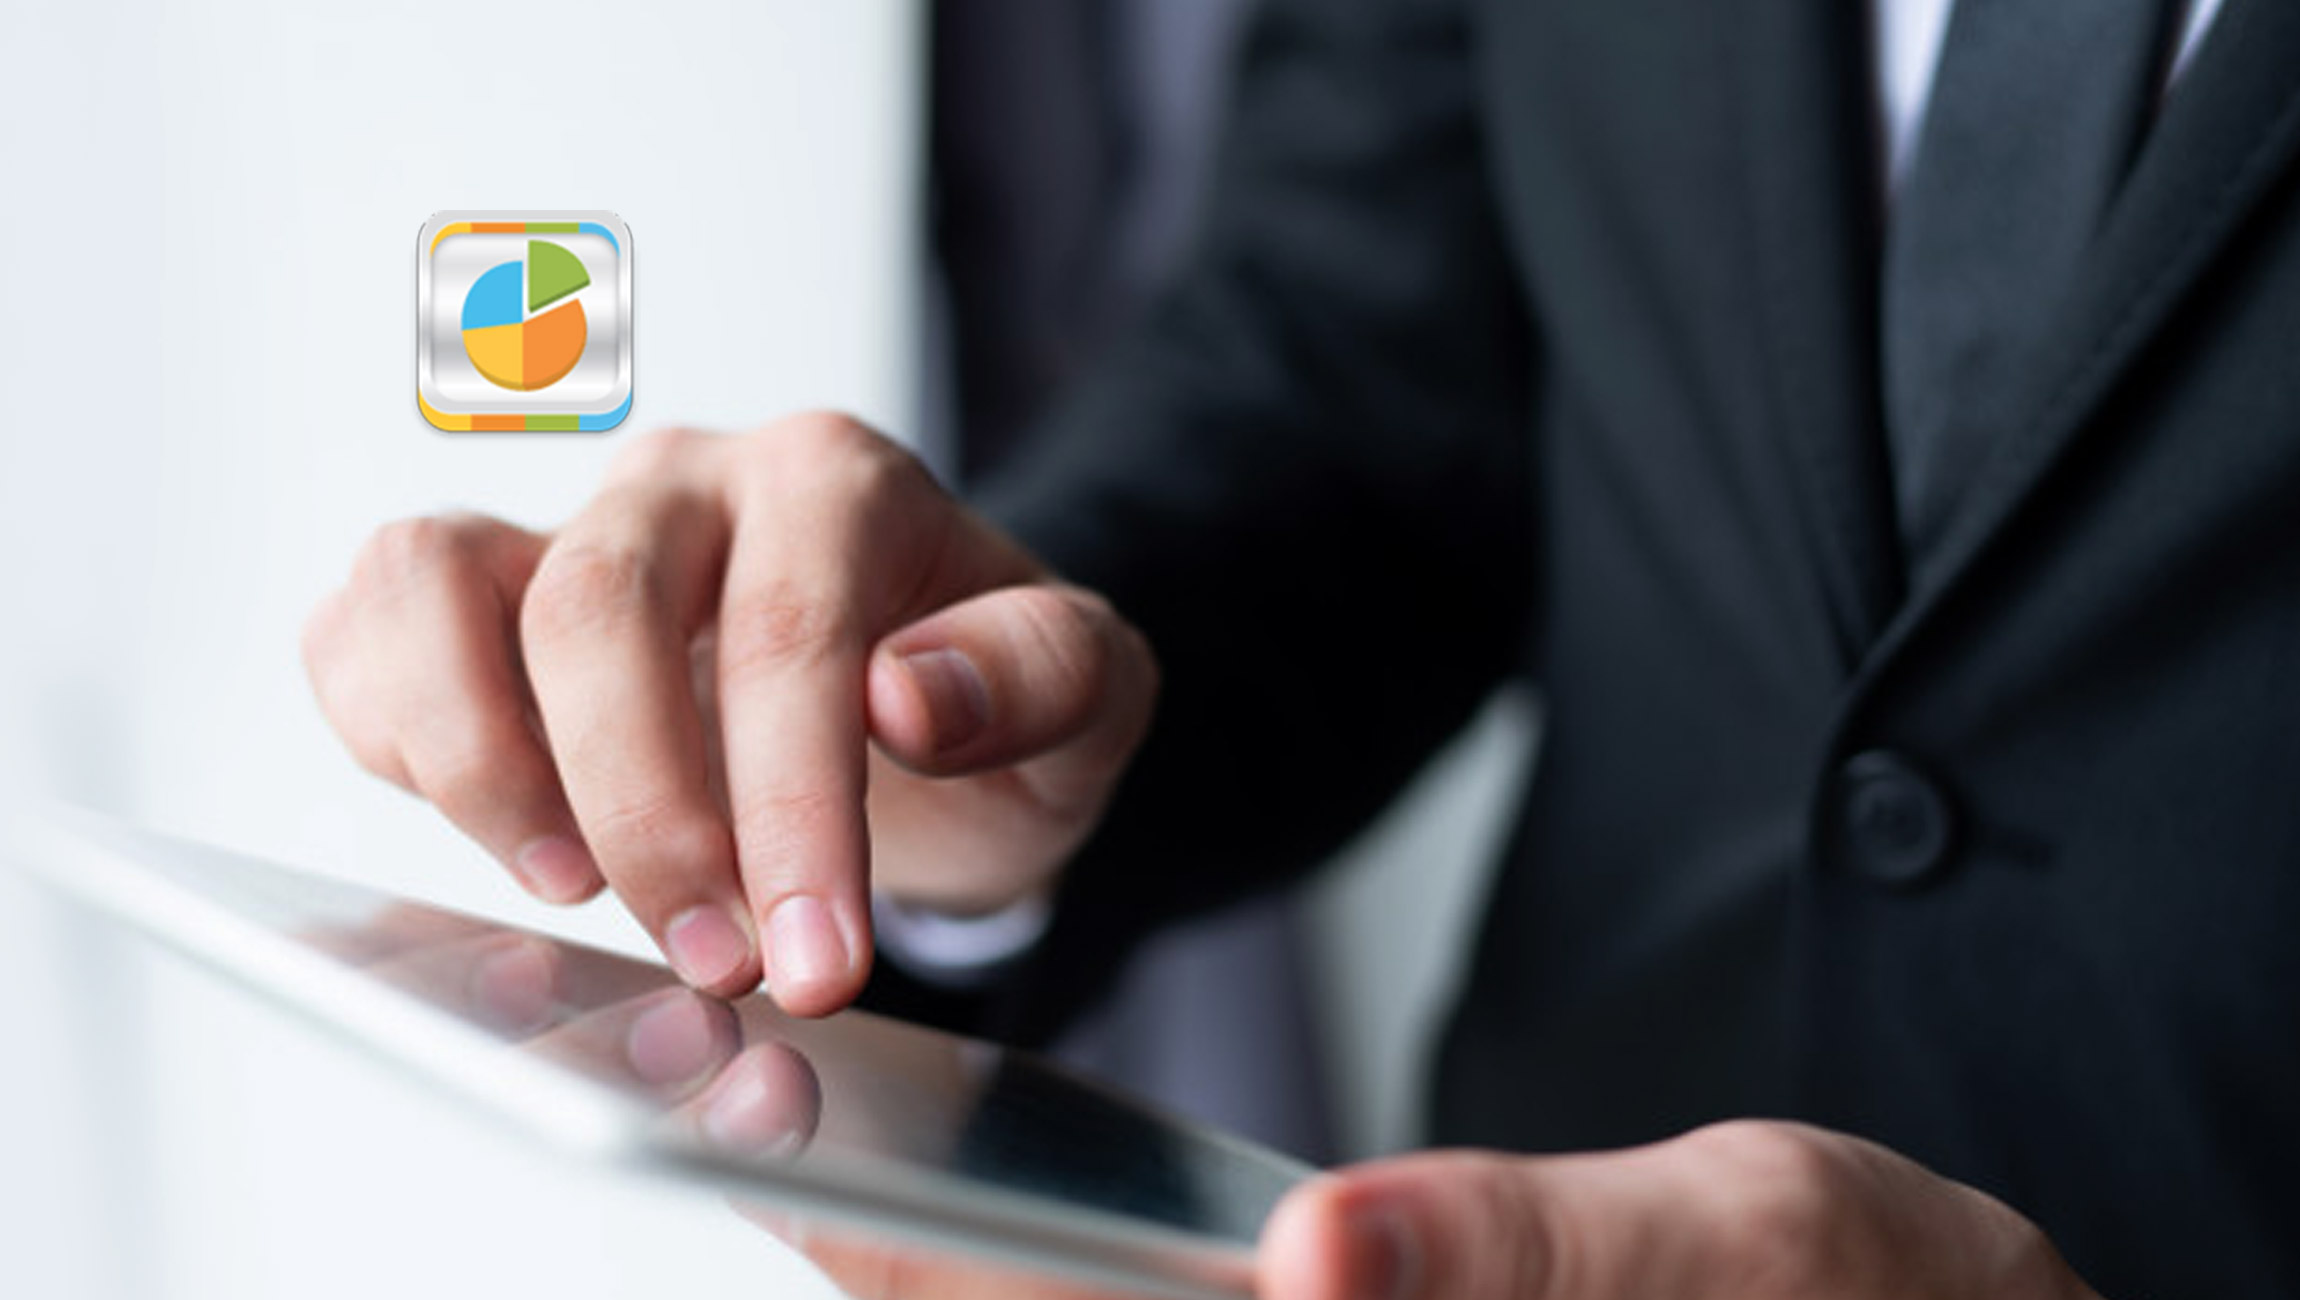 Appy Pie Introduces Live Chat Software in Closed Beta